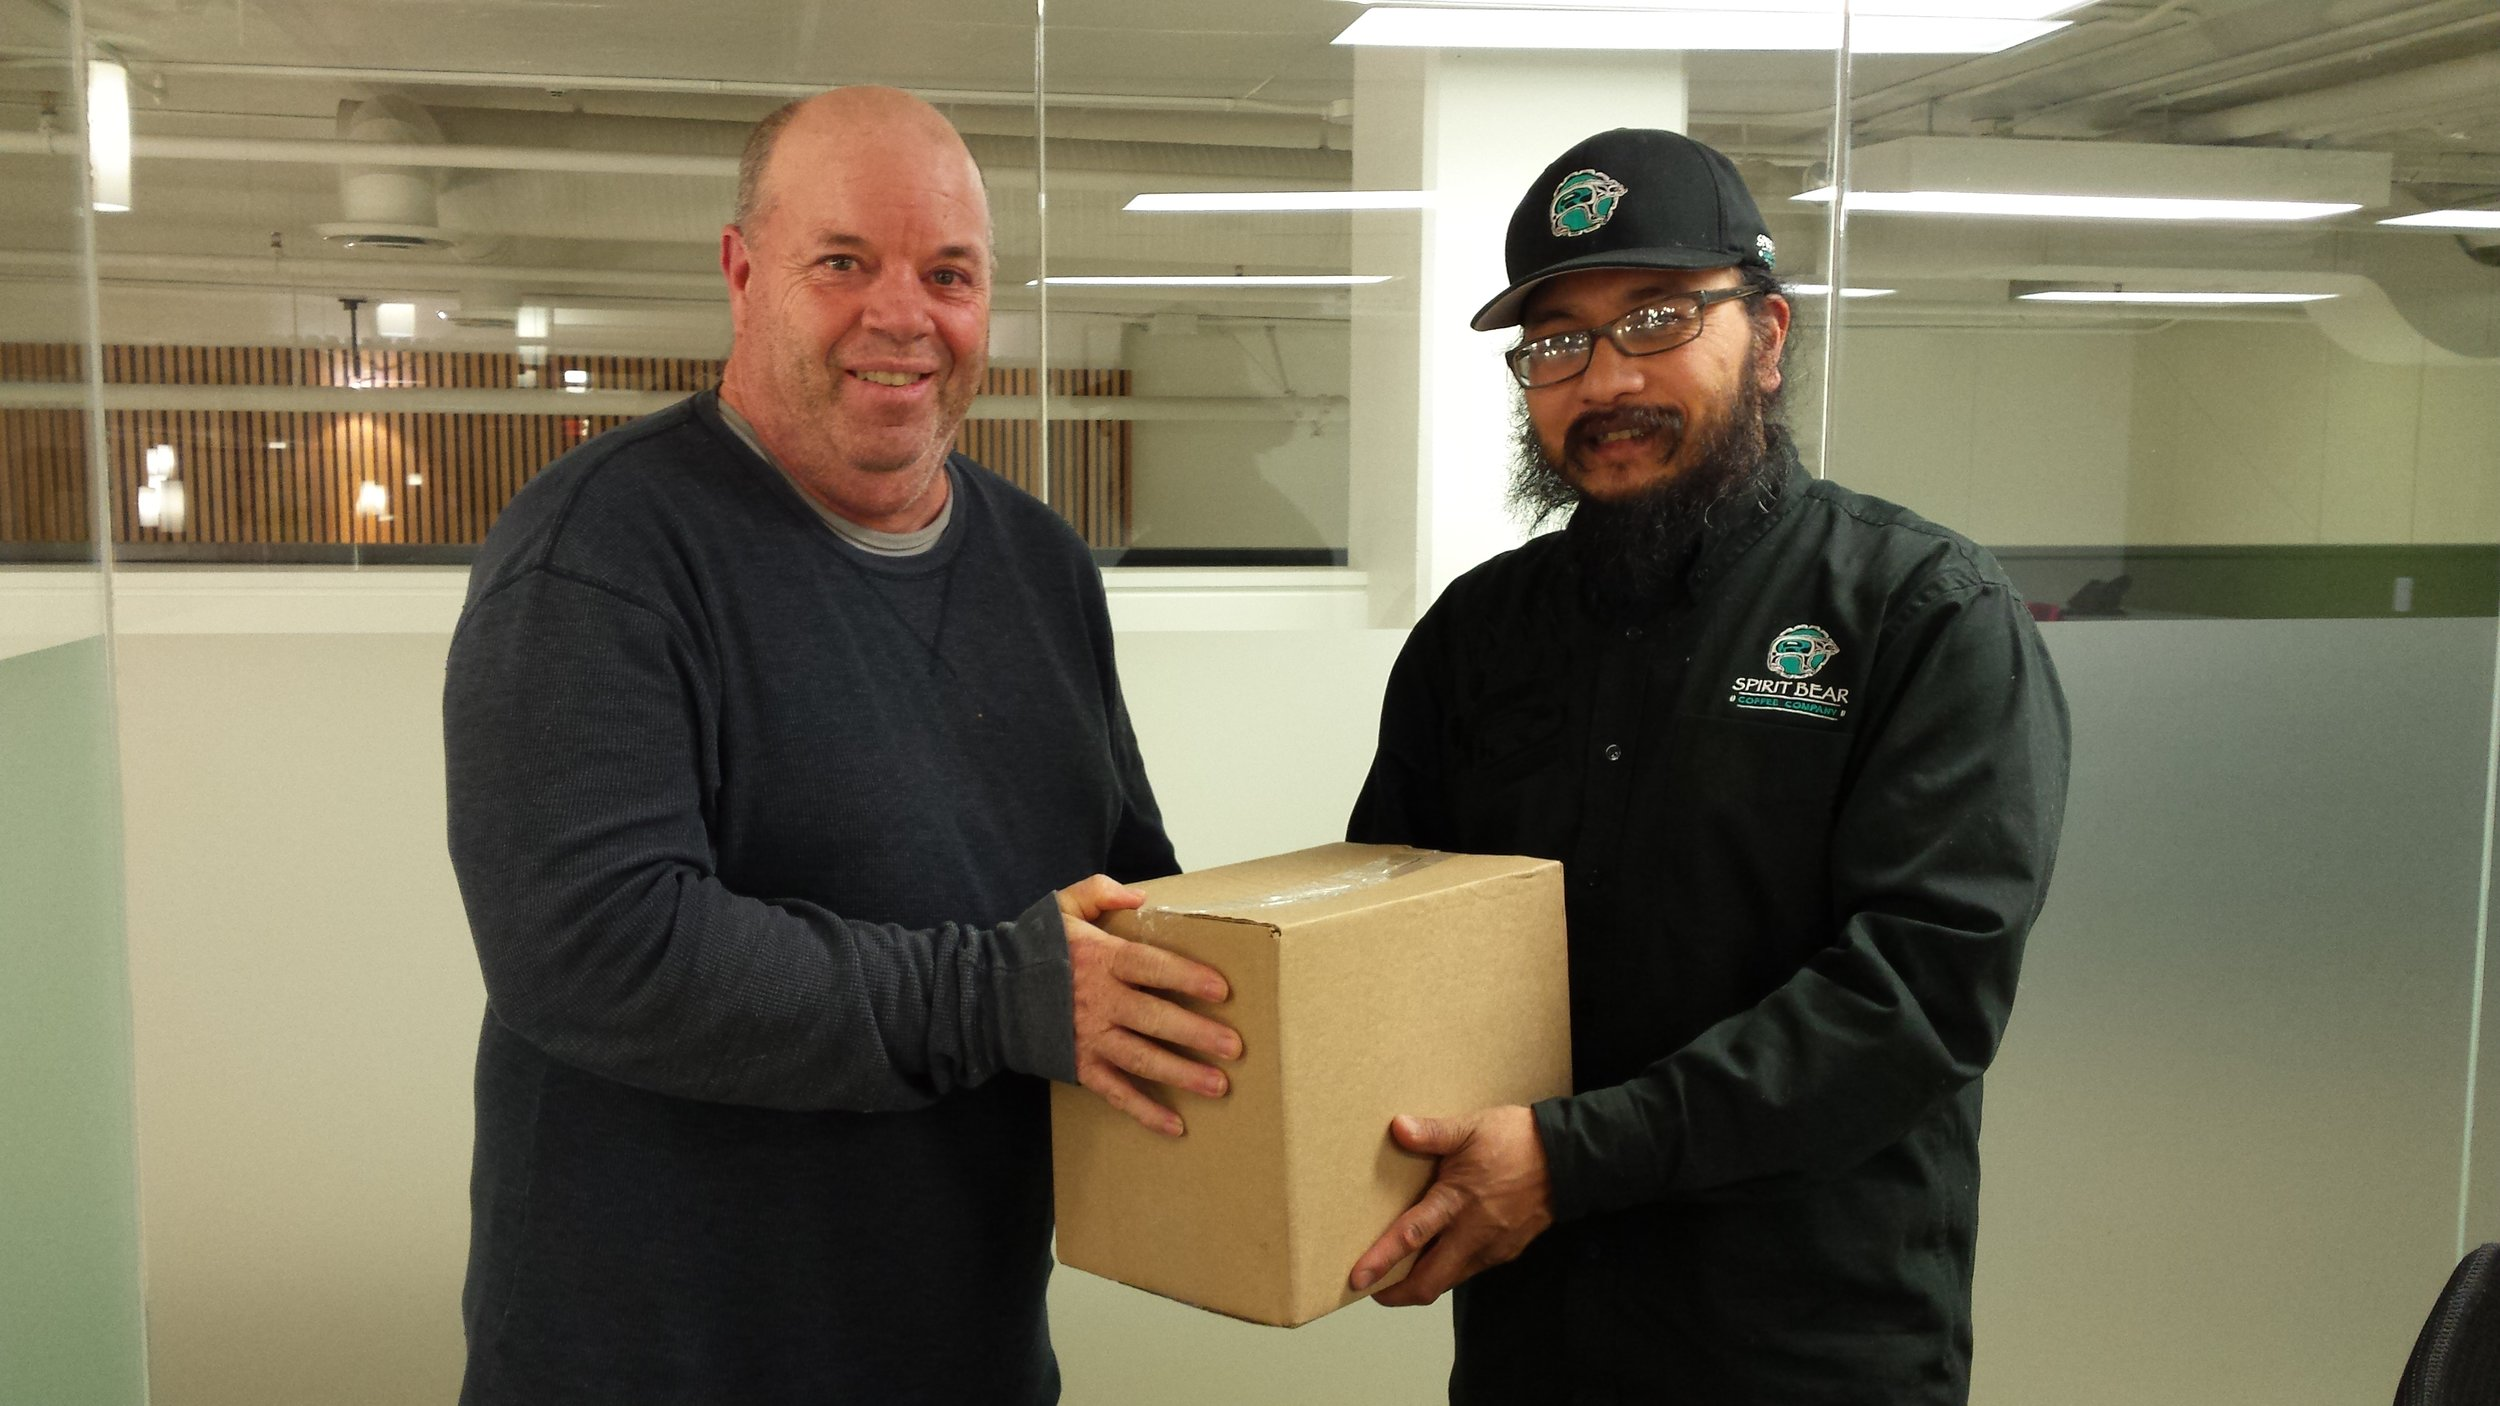 Stewart Brotchie receives a box of Spirit Bear coffee from Jay Peachy after a presentation by Jay at our recent meeting